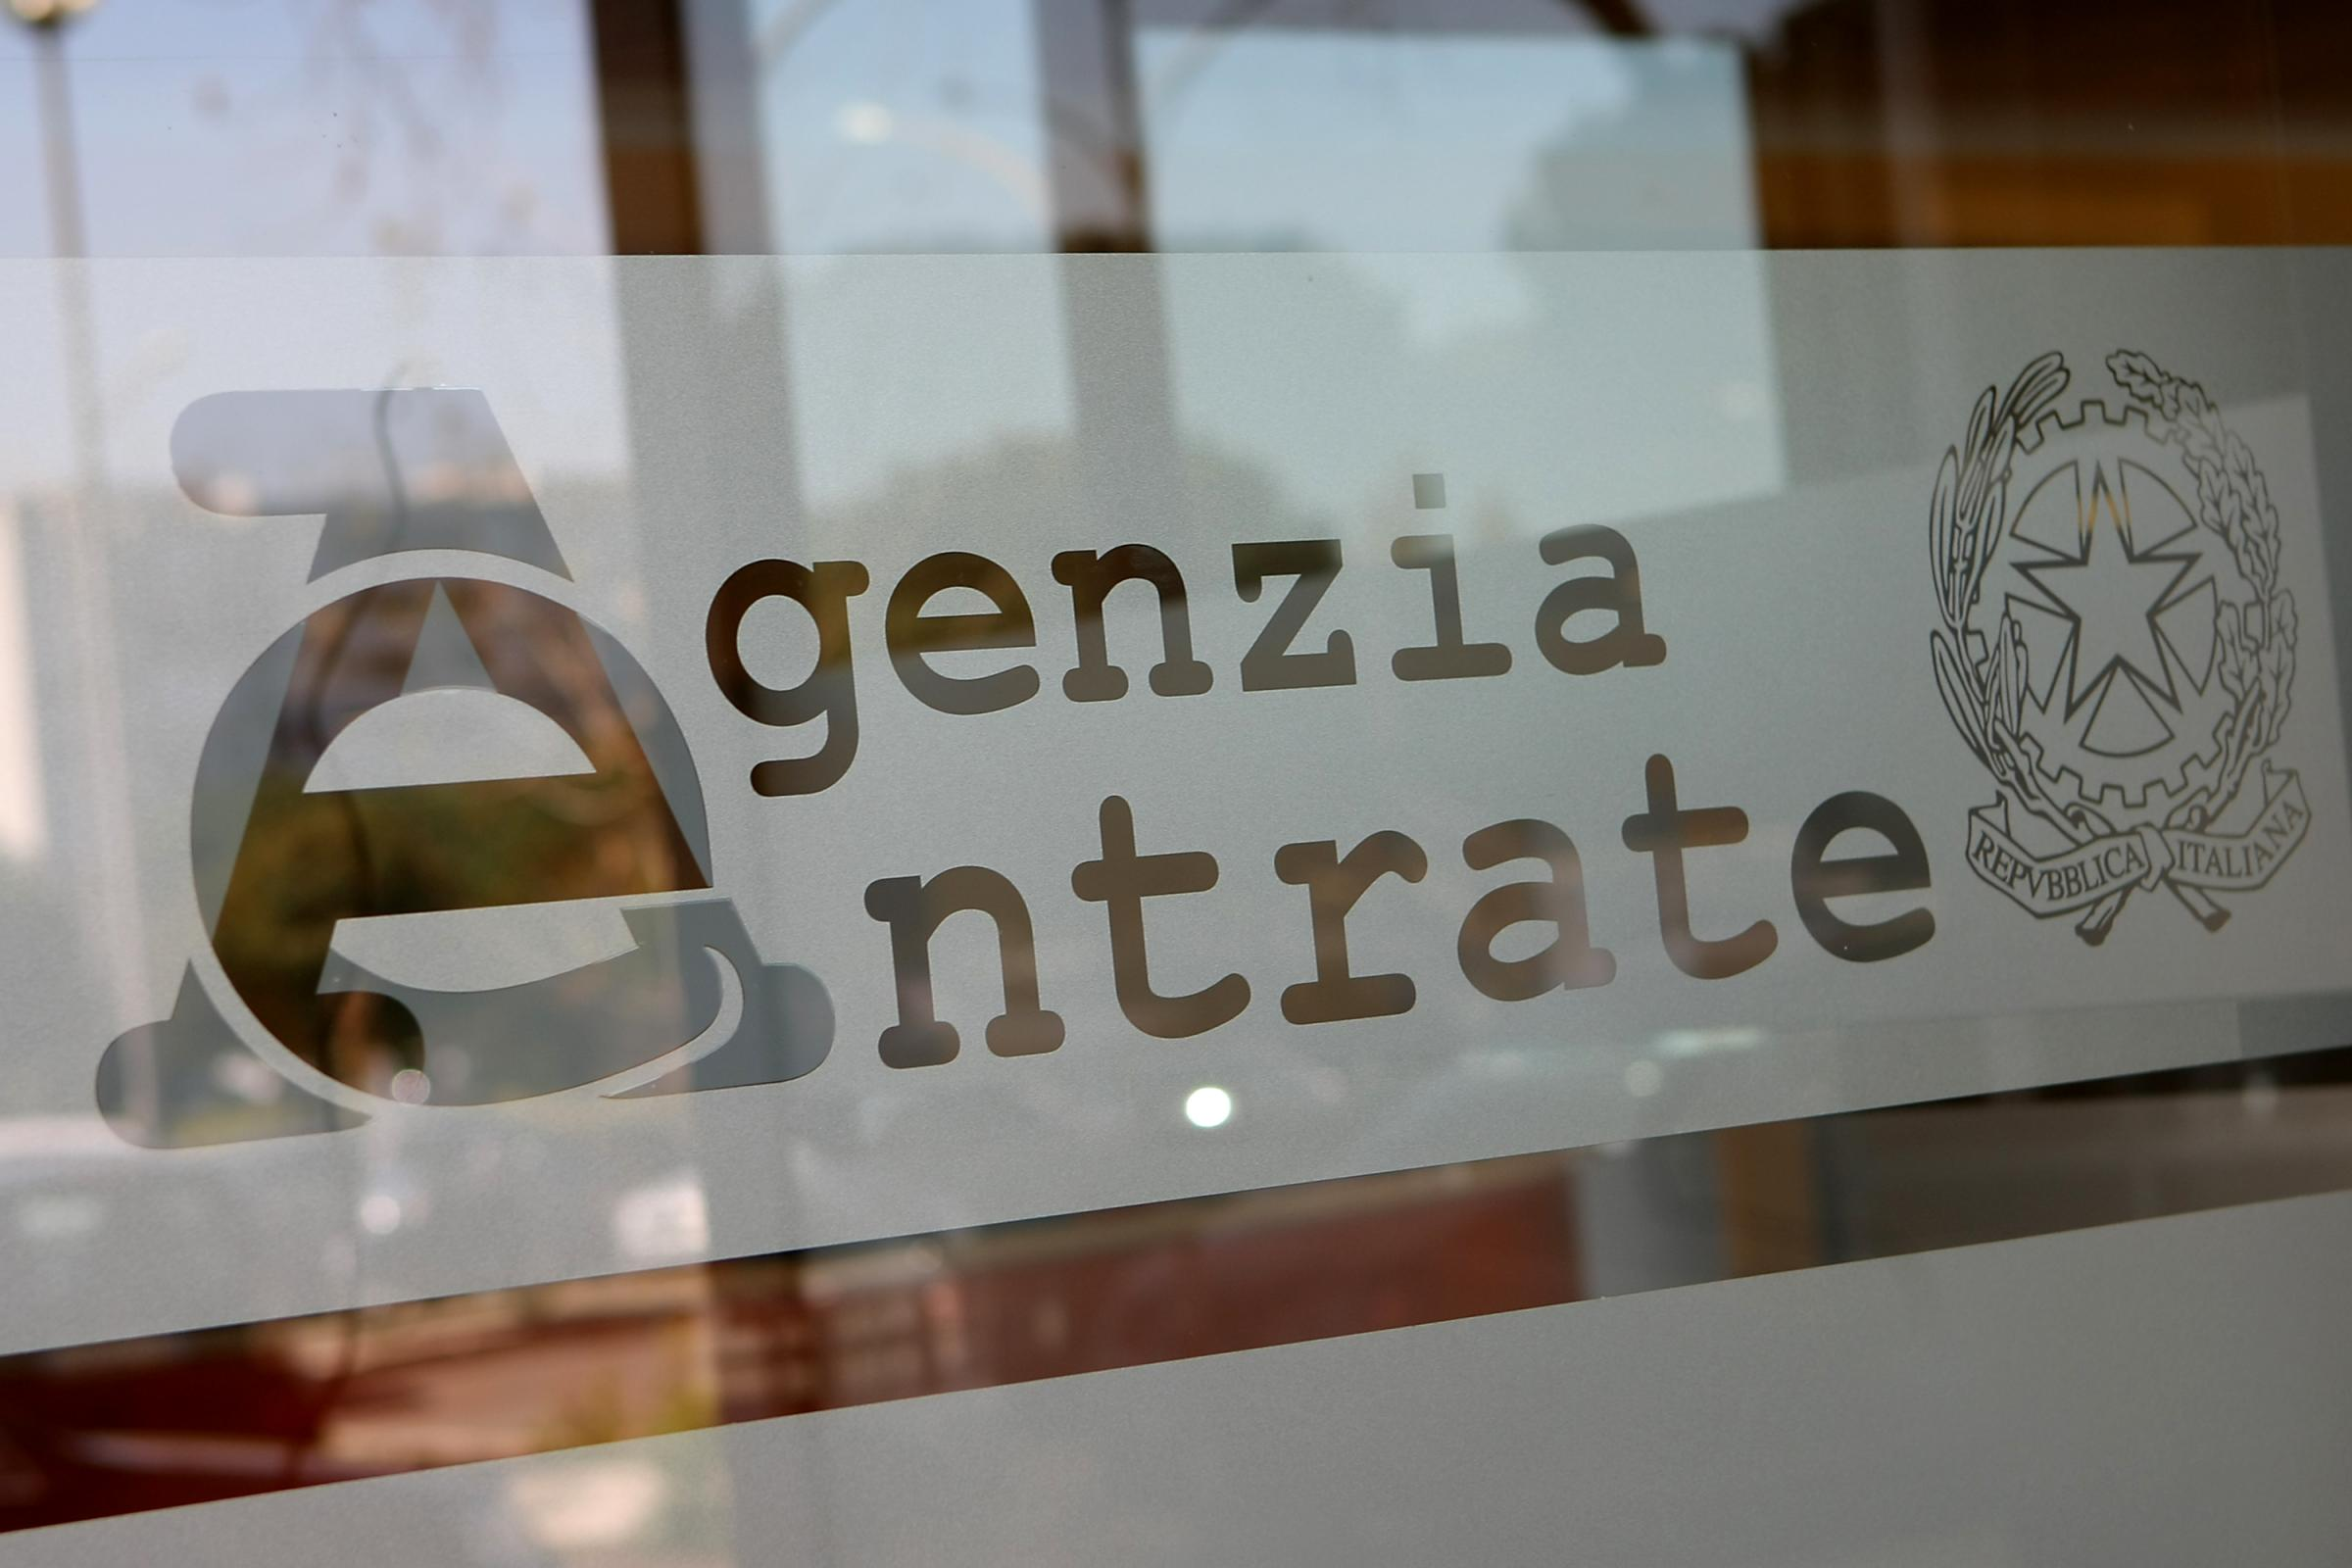 Foto Agenzie dell'entrate